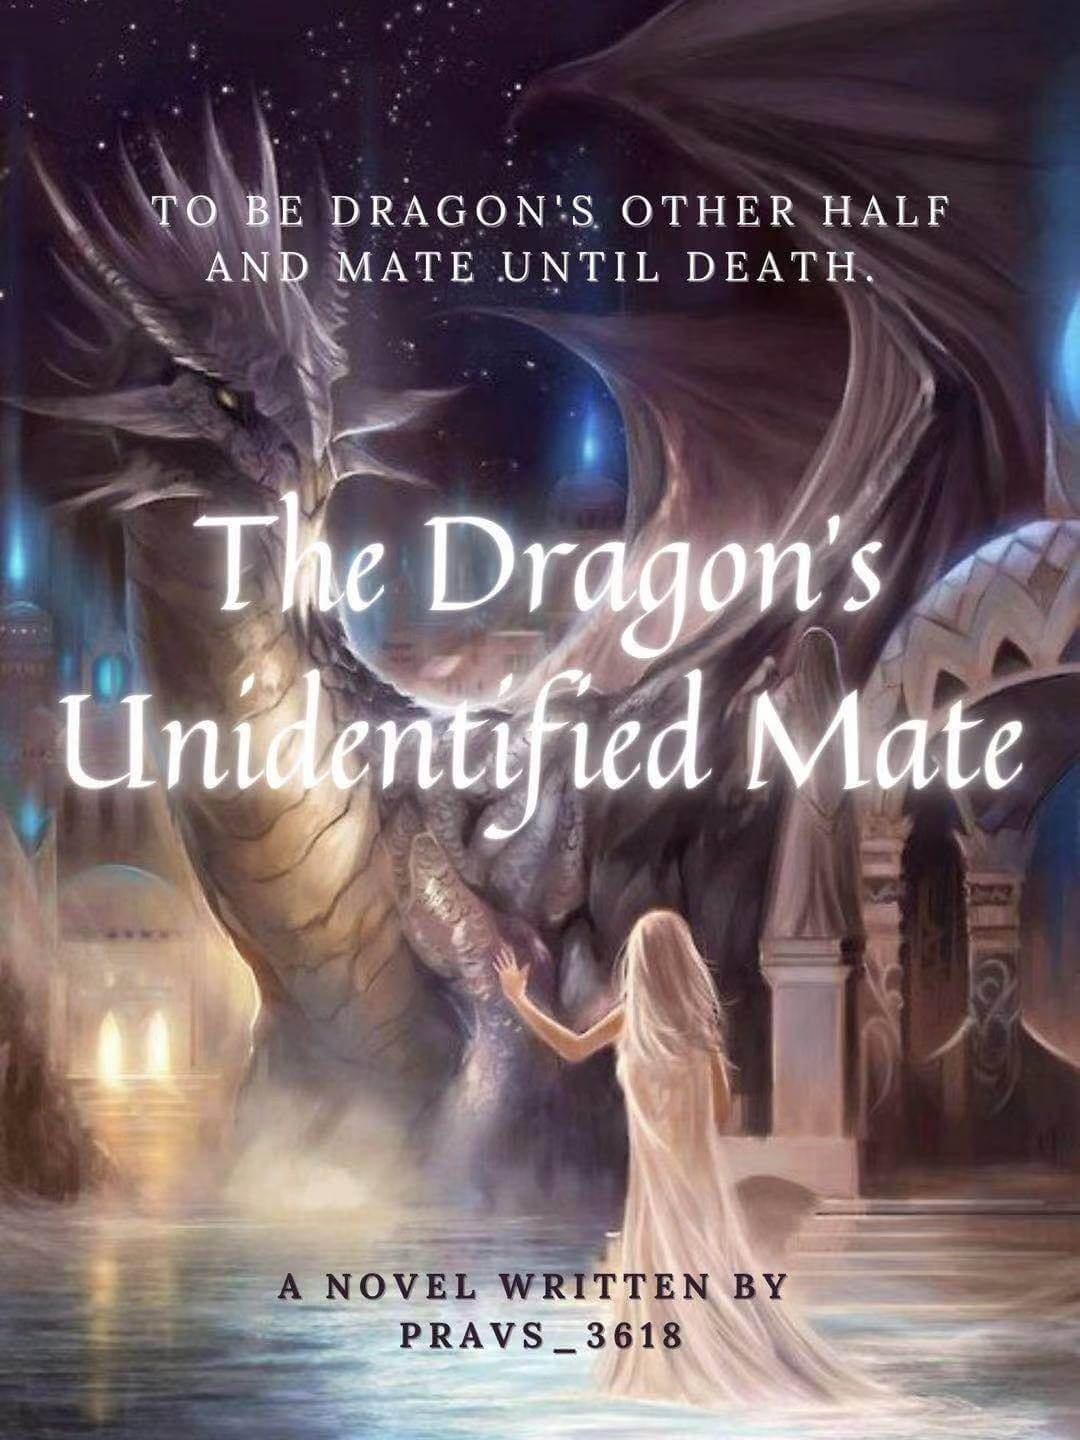 The dragons unidentified Mate